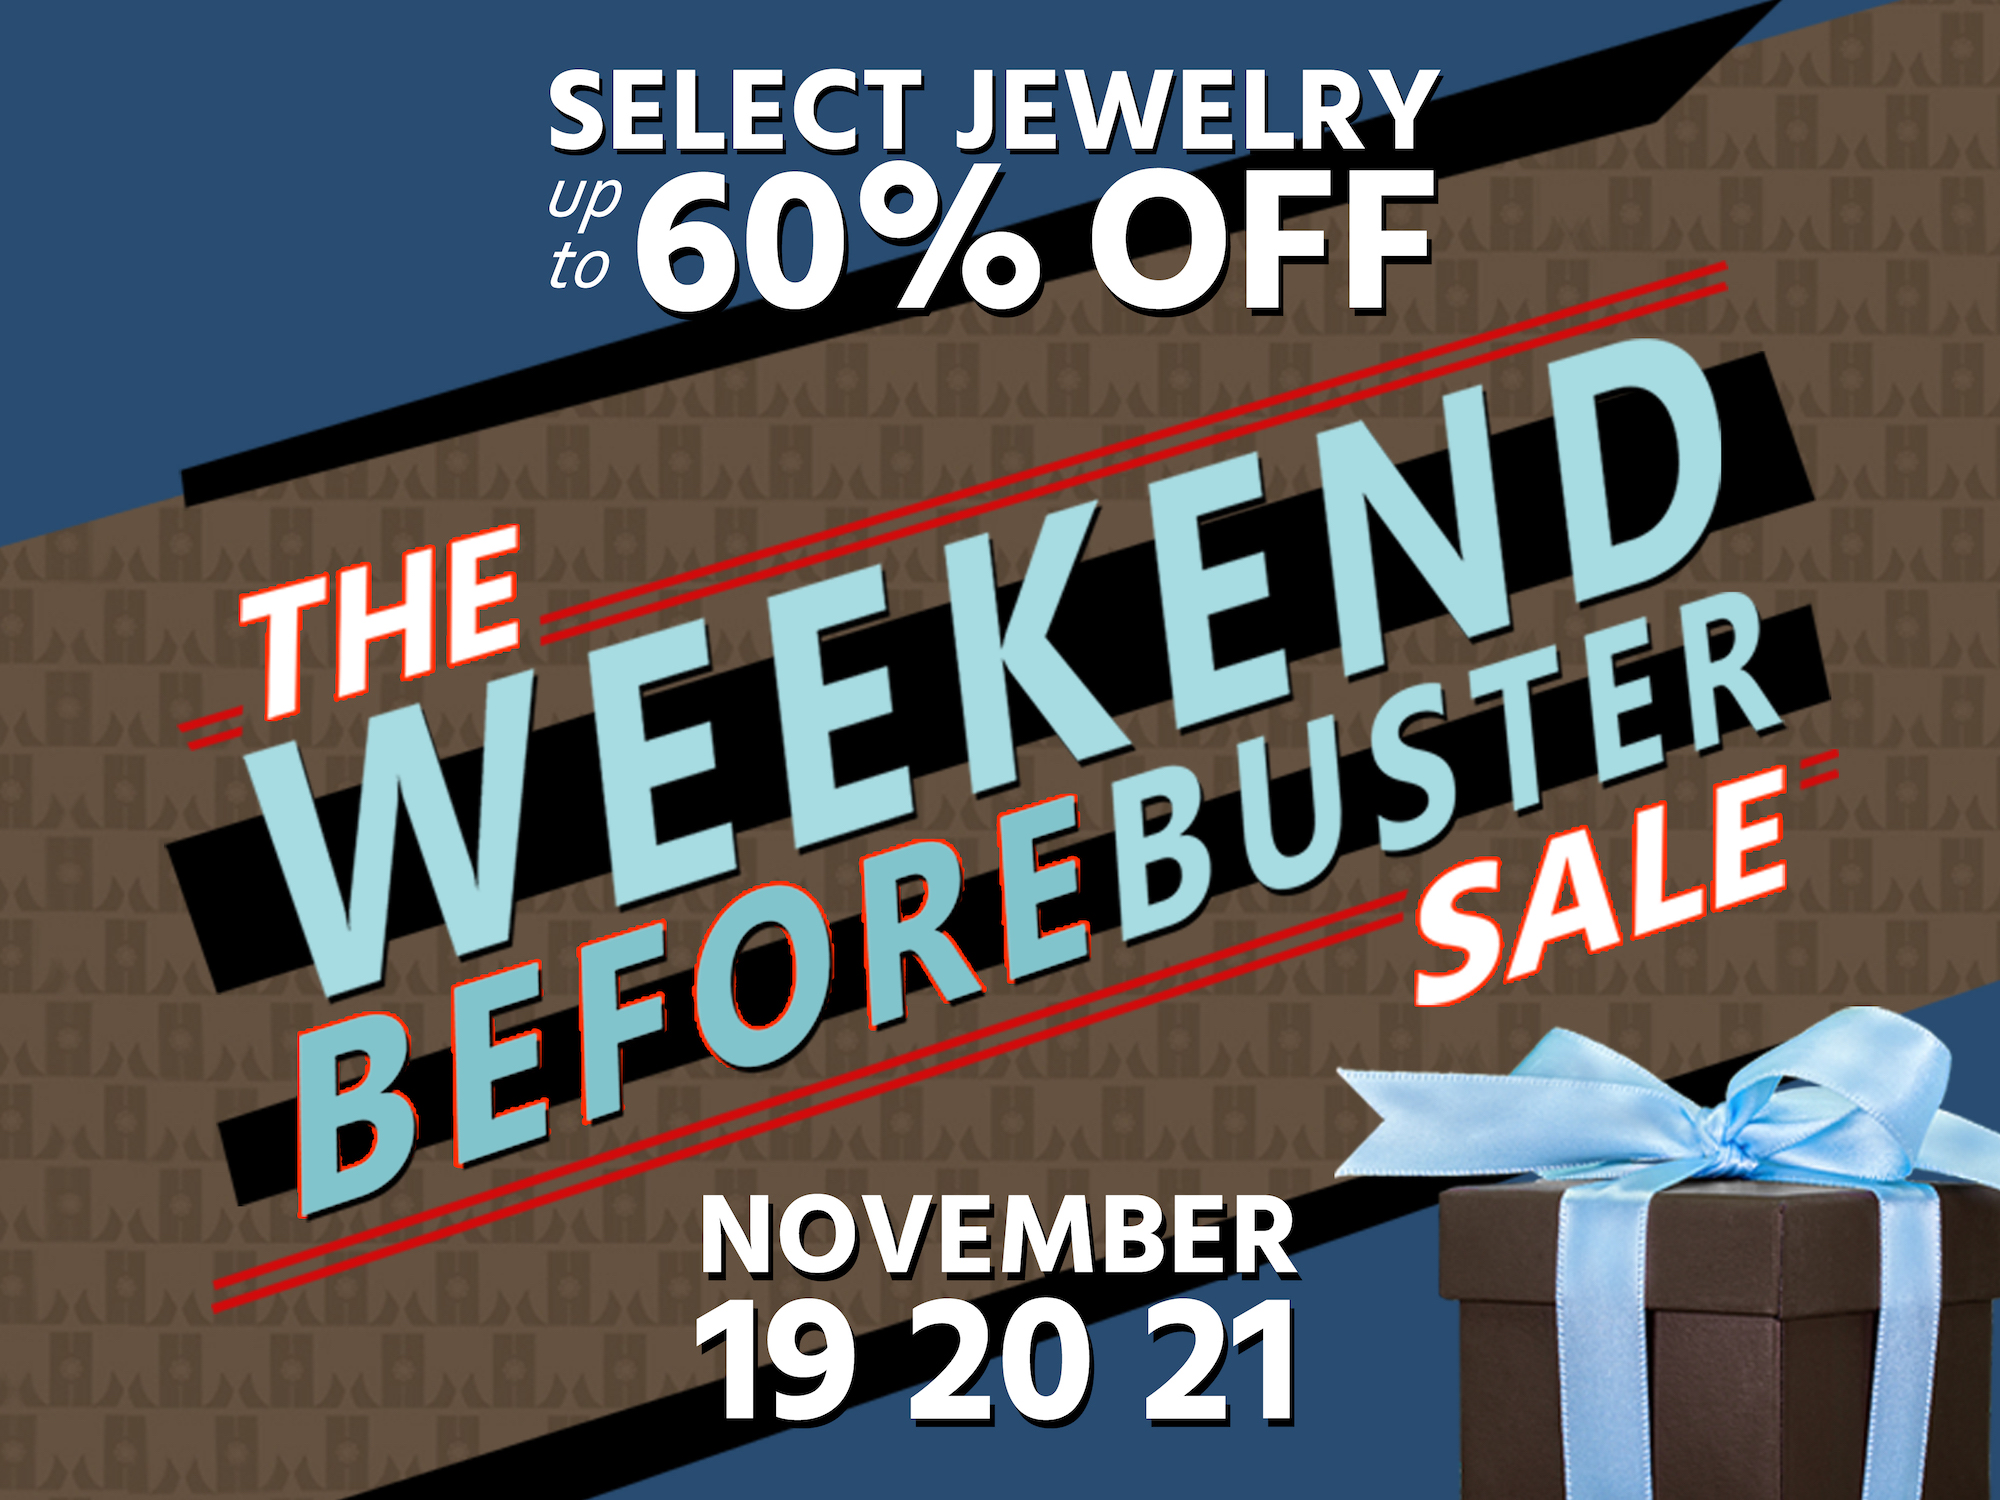 Wrapped brown jewelry box with a blue ribbon surrounded by the words Weekend BeforeBuster Sale November Select Jewelry up to 60% off